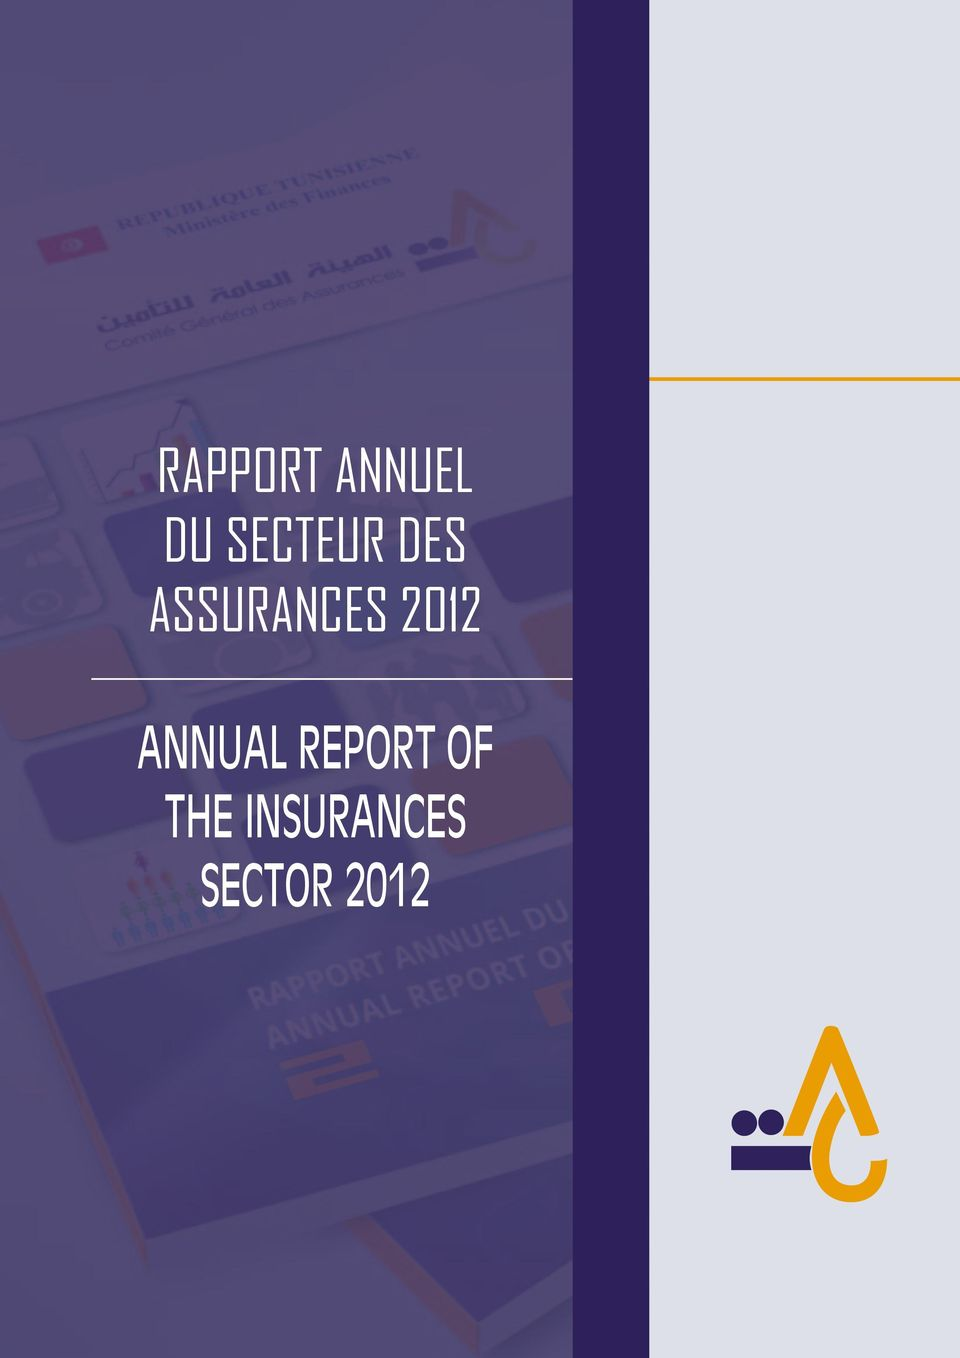 2012 ANNUAL REPORT OF